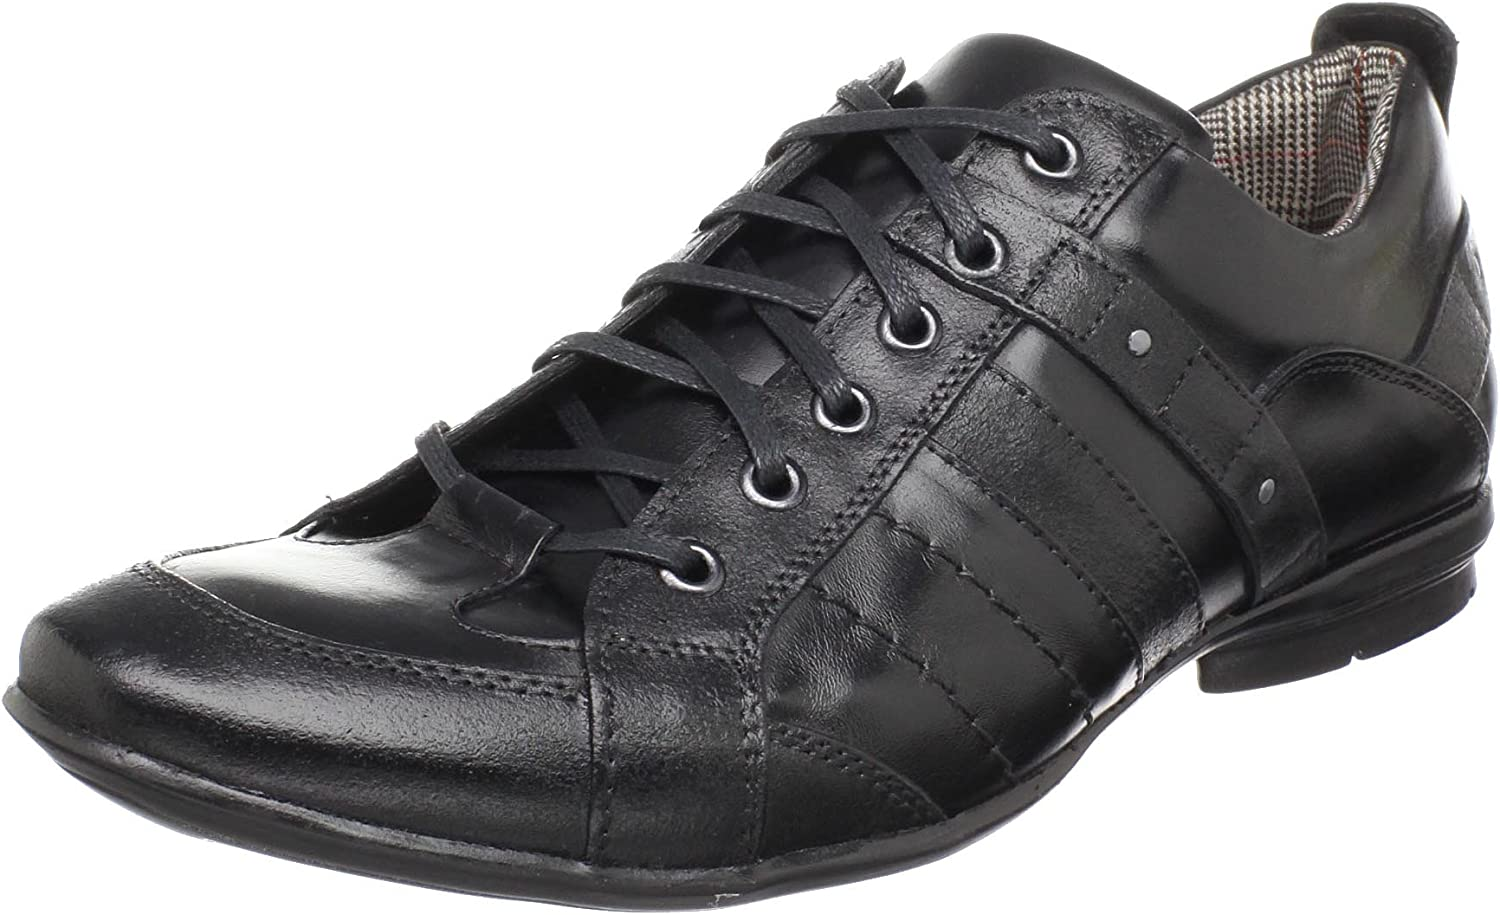 Bacco Bucci All items in the store Men's Classic Suter Sporty Lace-Up